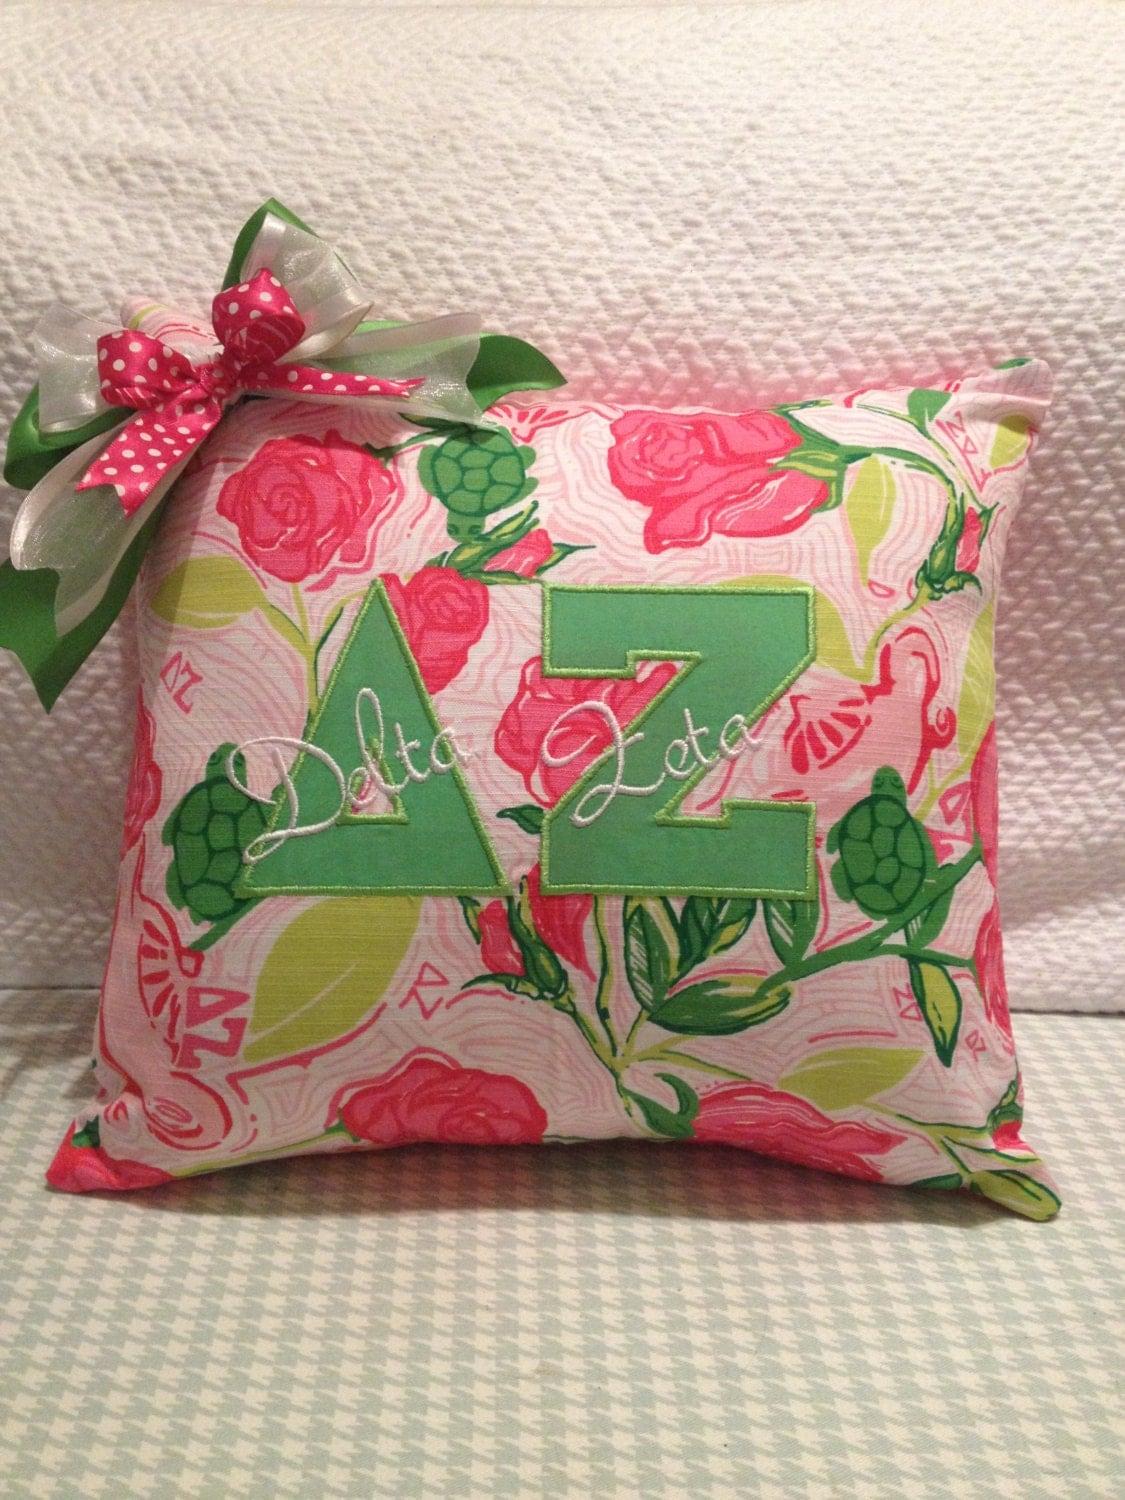 Delta zeta greek letter pillow pink lilly pulitzer delta zeta for Lilly pulitzer sorority letters